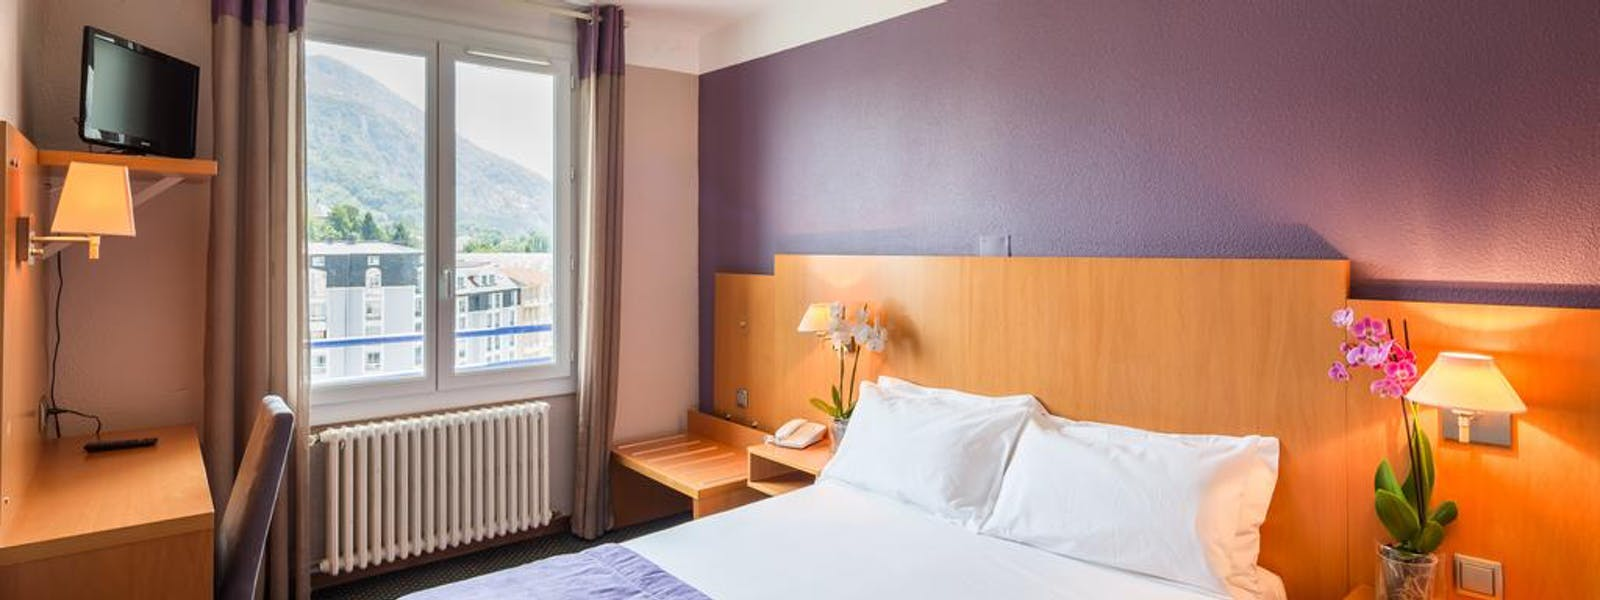 QUALITY HOTEL CHRISTINA LOURDES CHAMBRE DOUBLE SINGLE